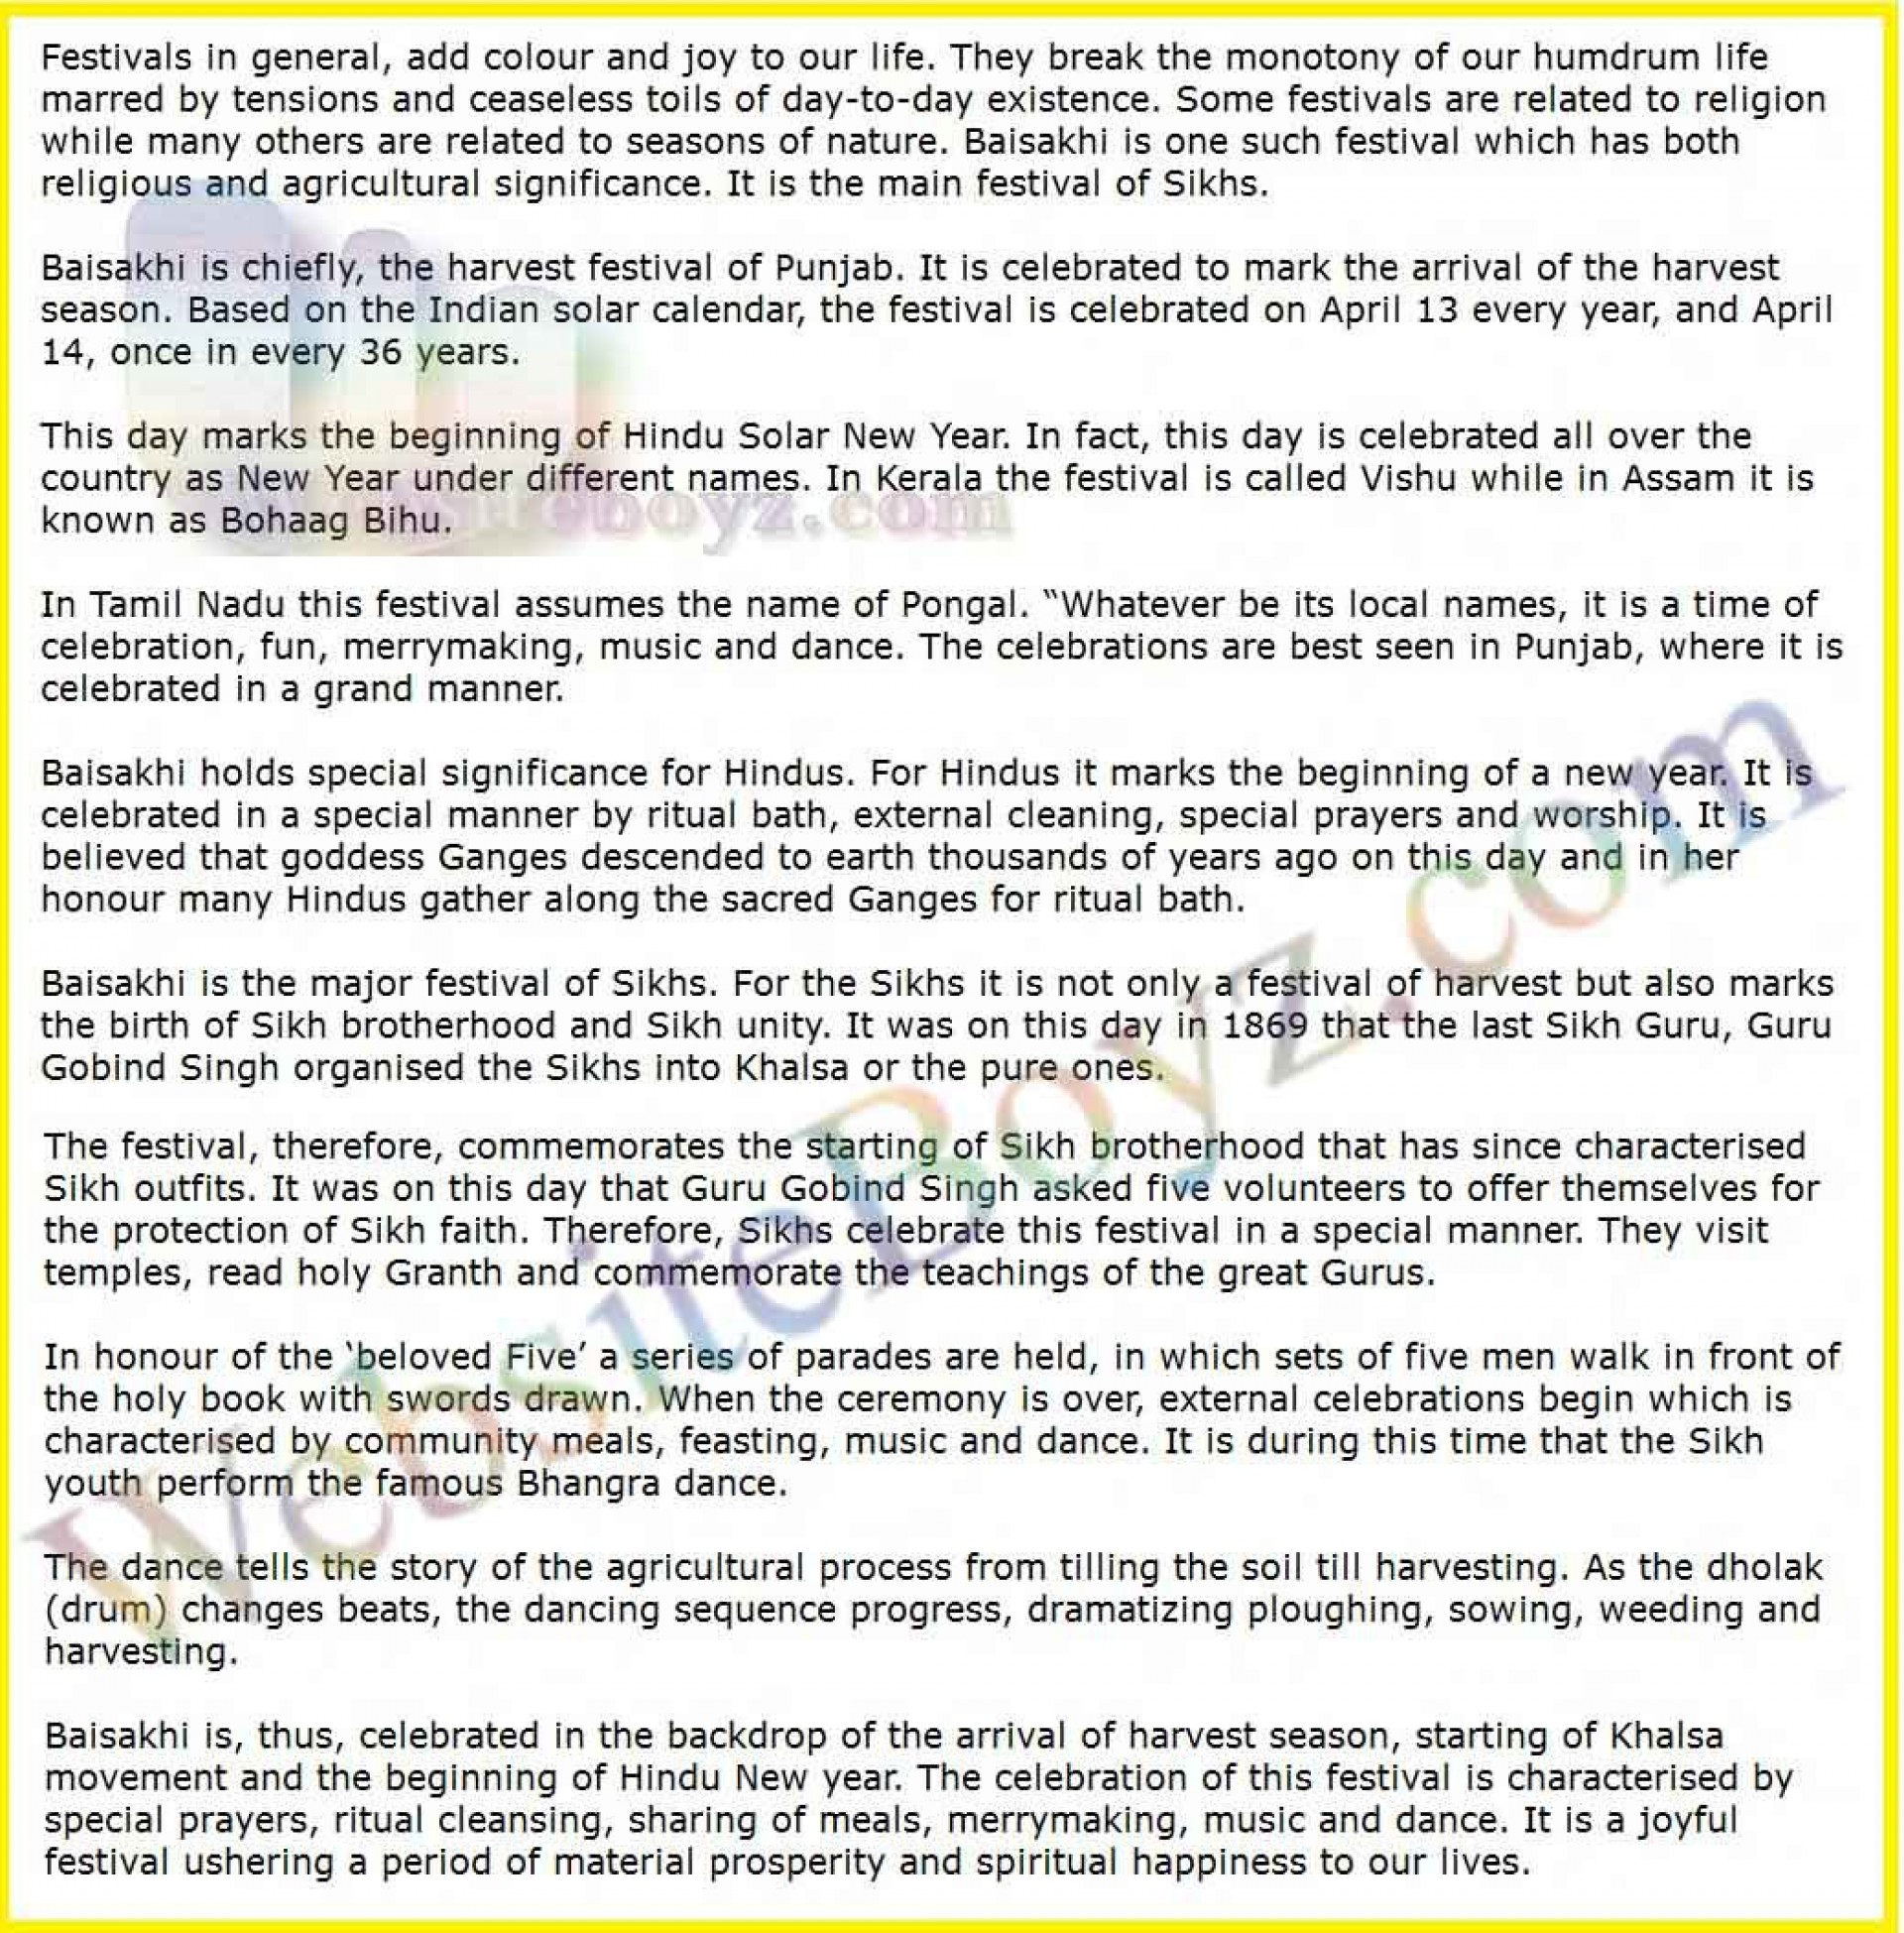 009 Essay On Dussehra Festival In English Example Surprising 1920